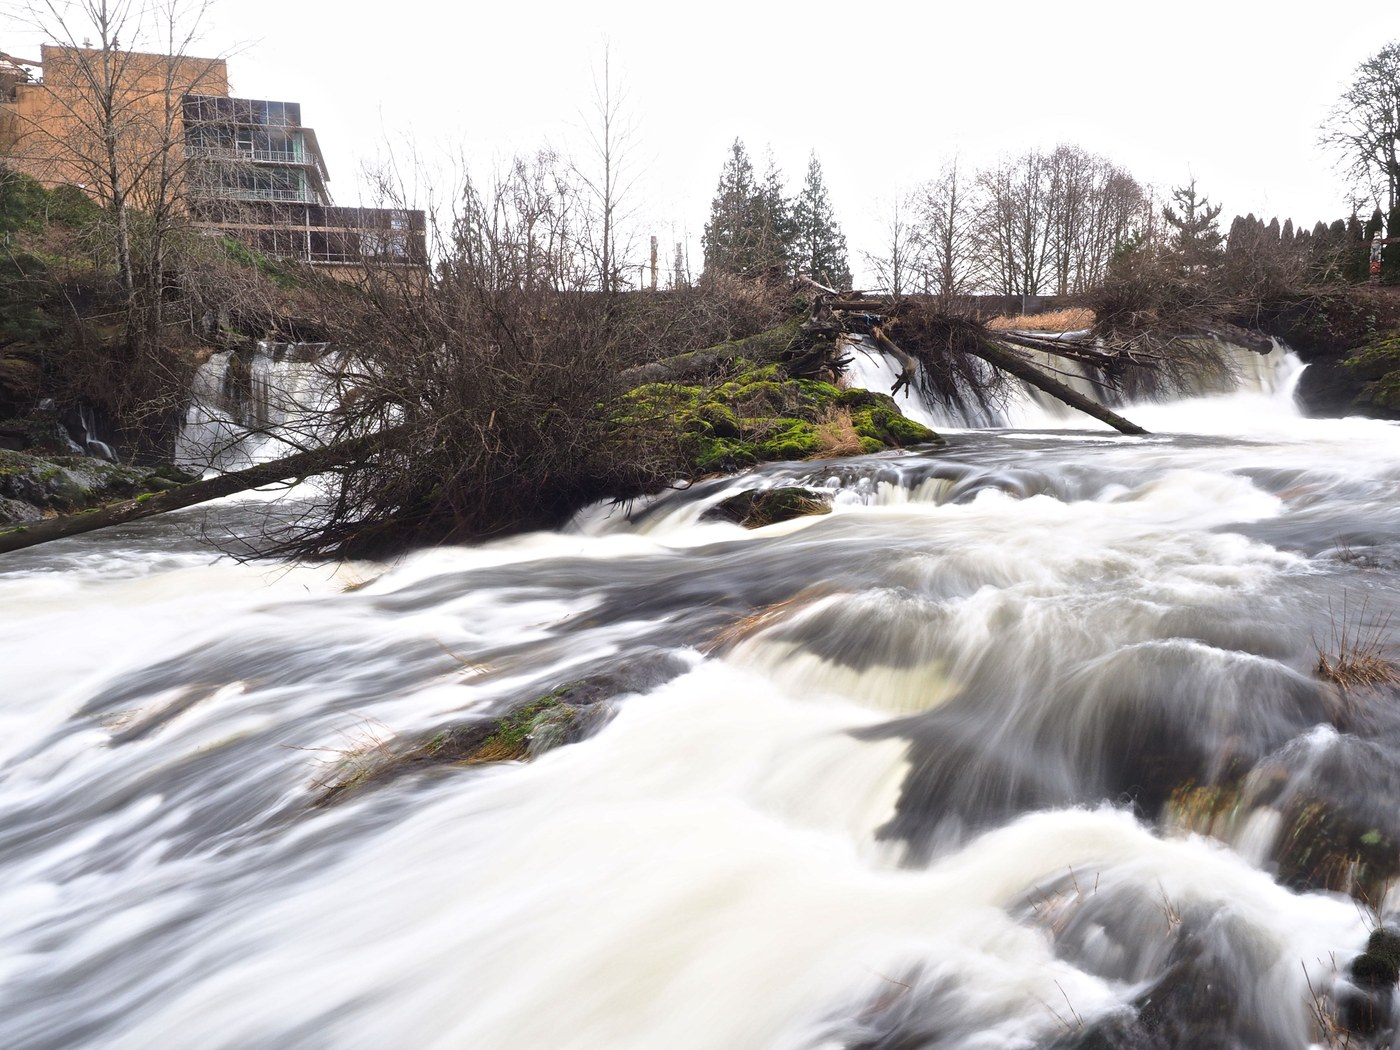 This urban park offers great views of these powerful falls. Photo by Bob and Barb.